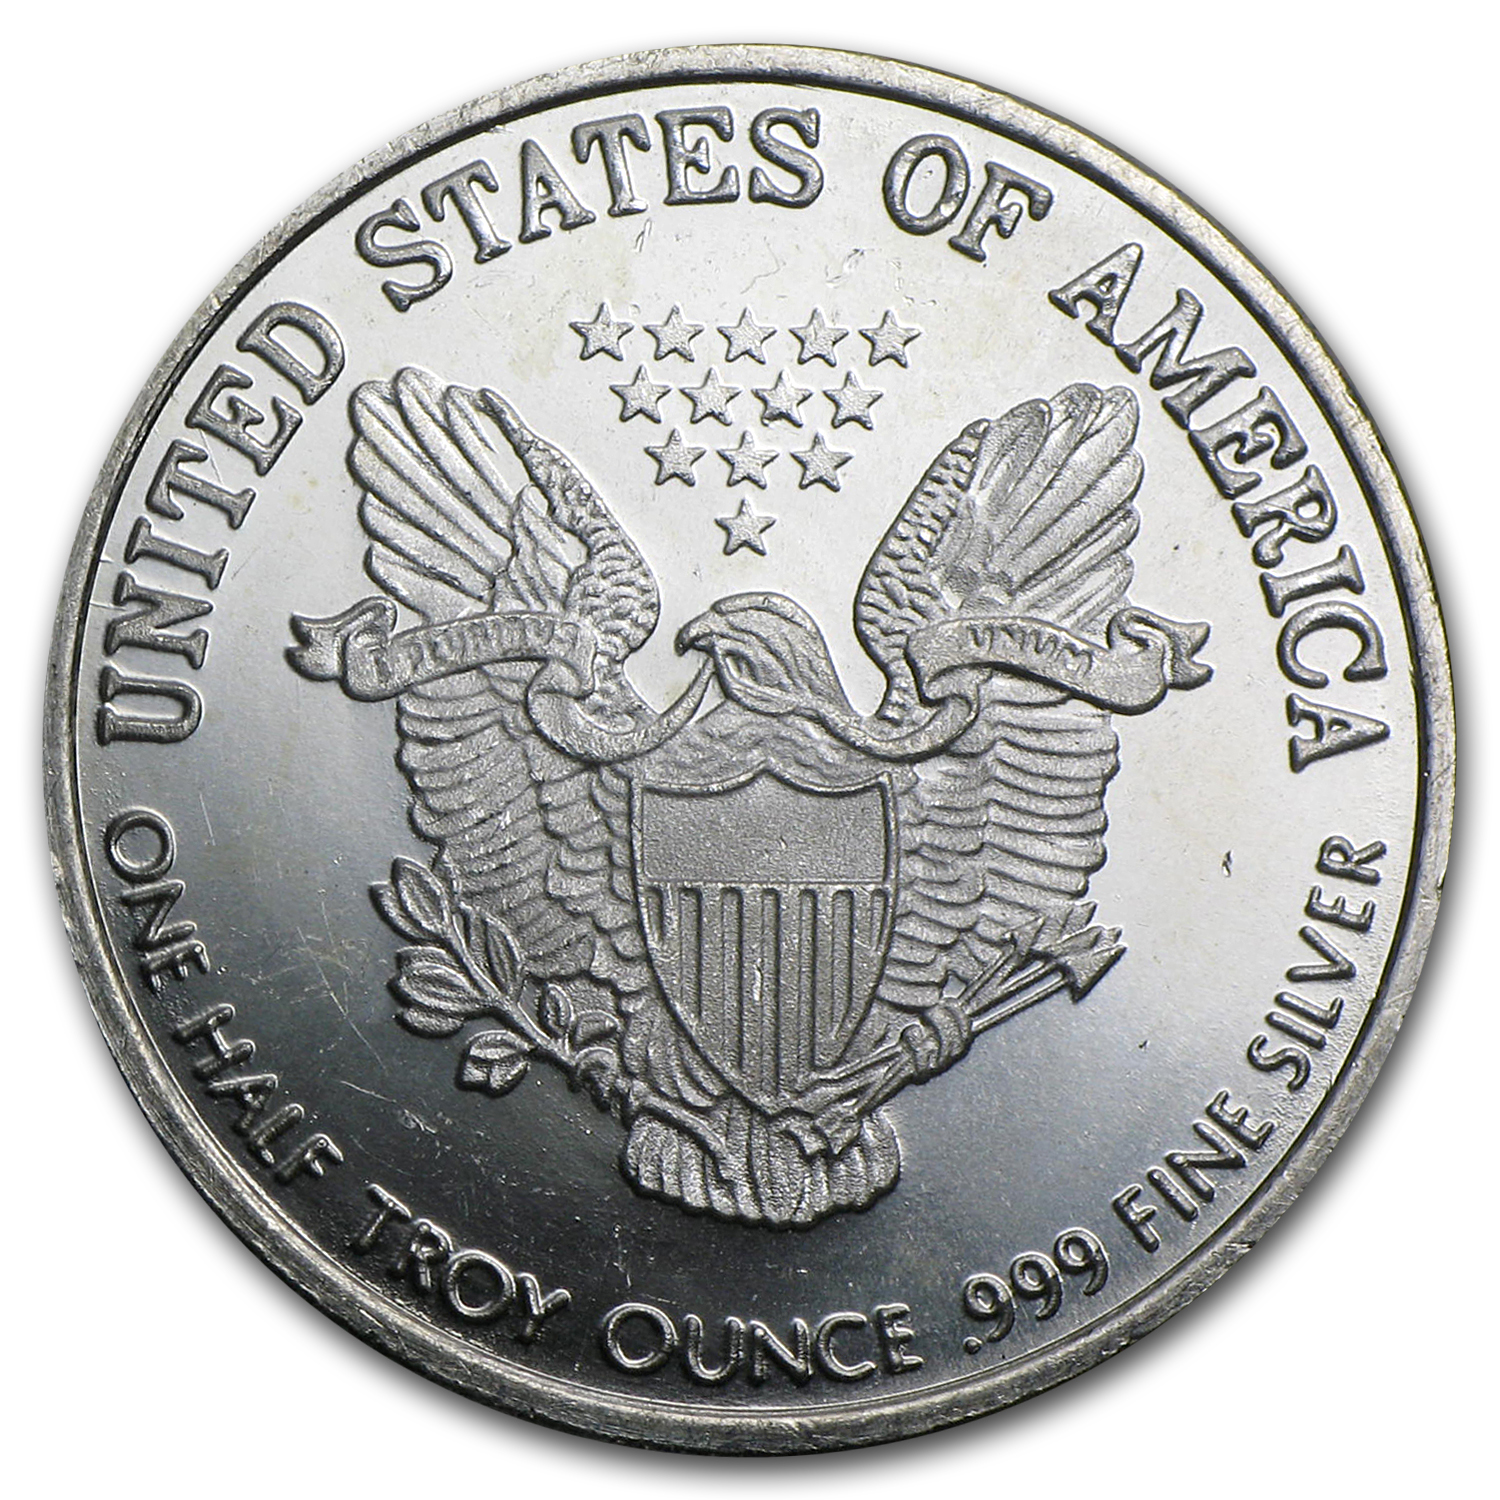 1/2 oz Silver Round - Silver Eagle (Walking Liberty/Replica)